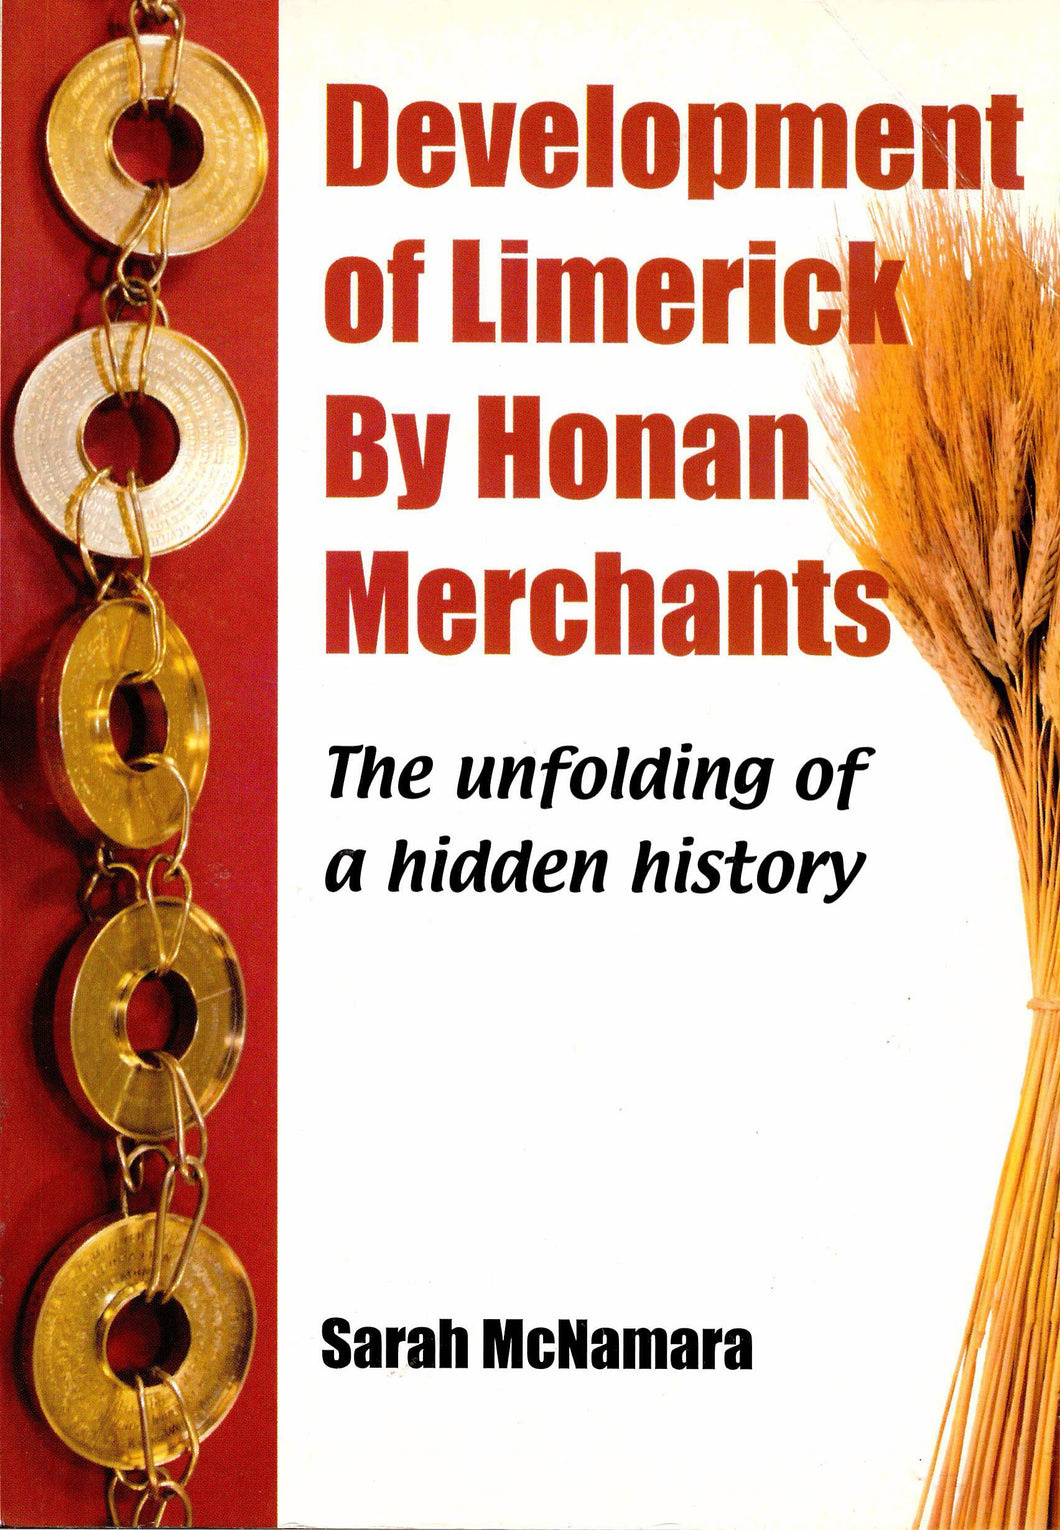 Development of Limerick By Honan Merchants. The Unfolding Of A Hidden History